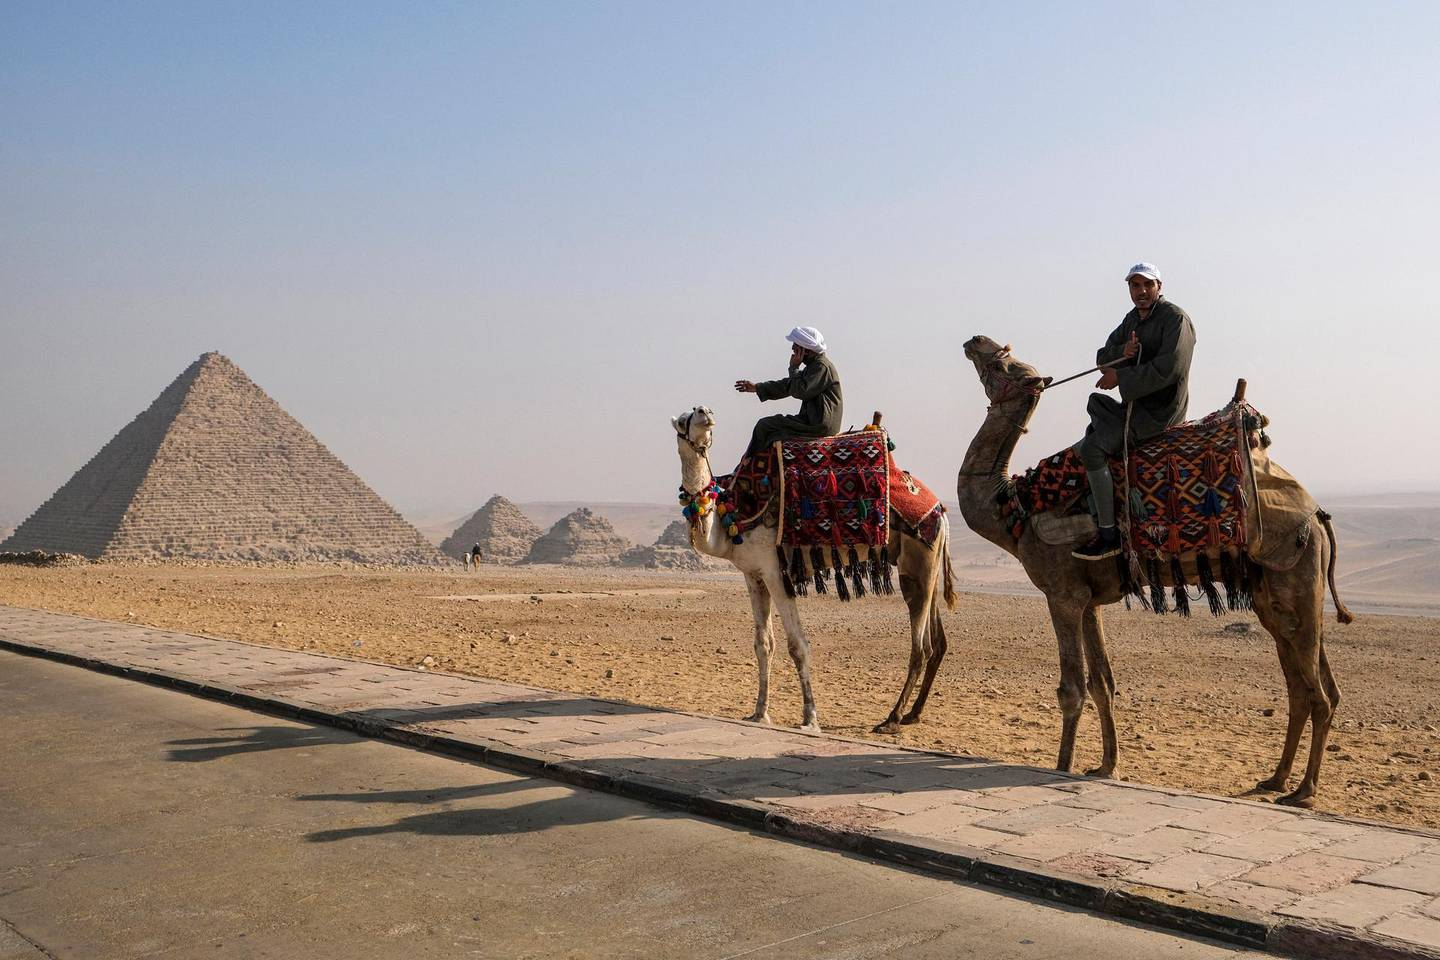 Camel trainers ride camels awaiting tourists by the Pyramid of Menkaure (Menkheres) at the Giza Pyramids Necropolis on the western outskirts of the Egyptian capital's twin city of Giza on January 7, 2021. (Photo by Amir MAKAR / AFP)